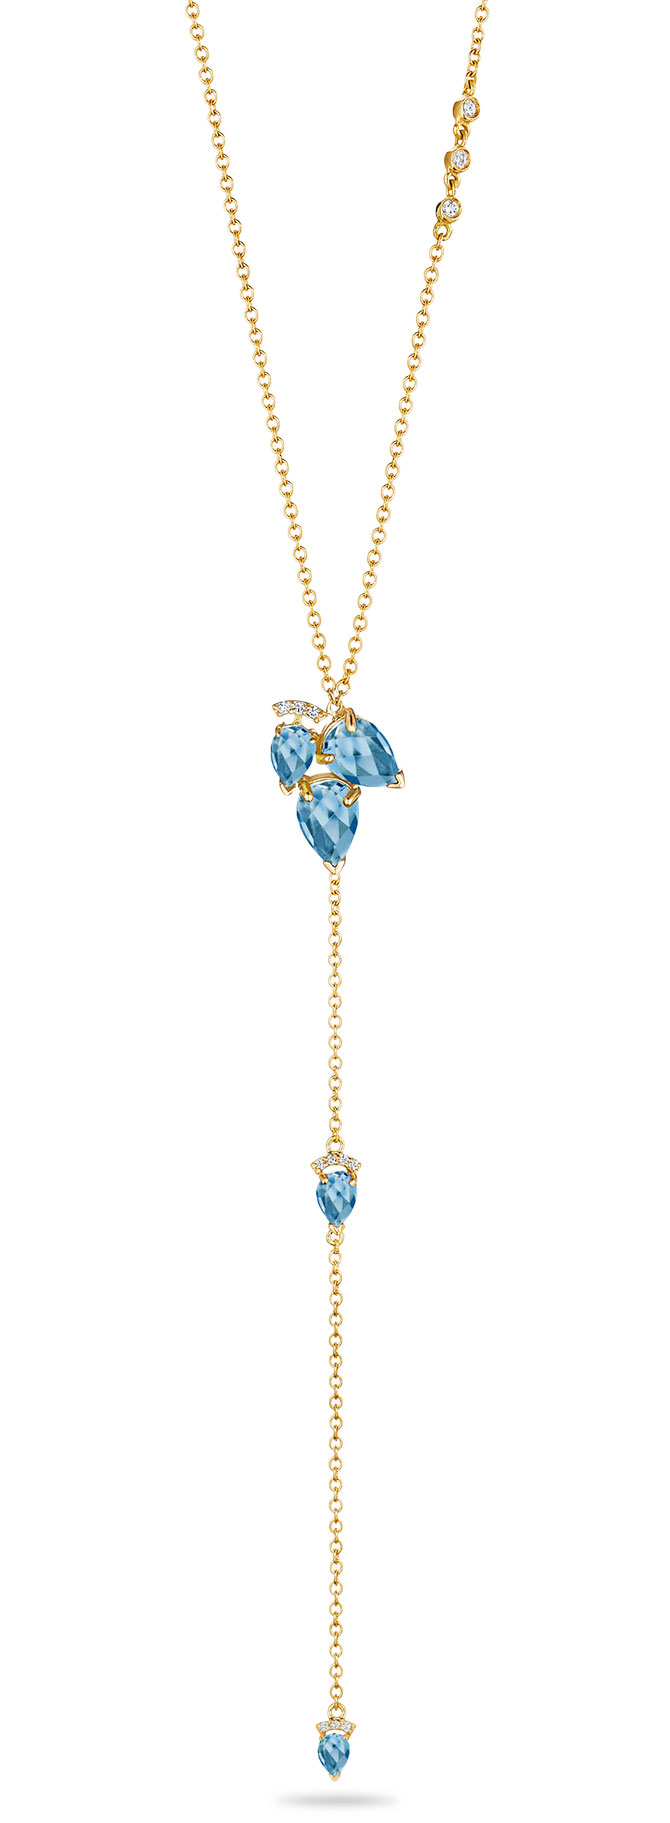 paige novick aquamarine lariat necklace